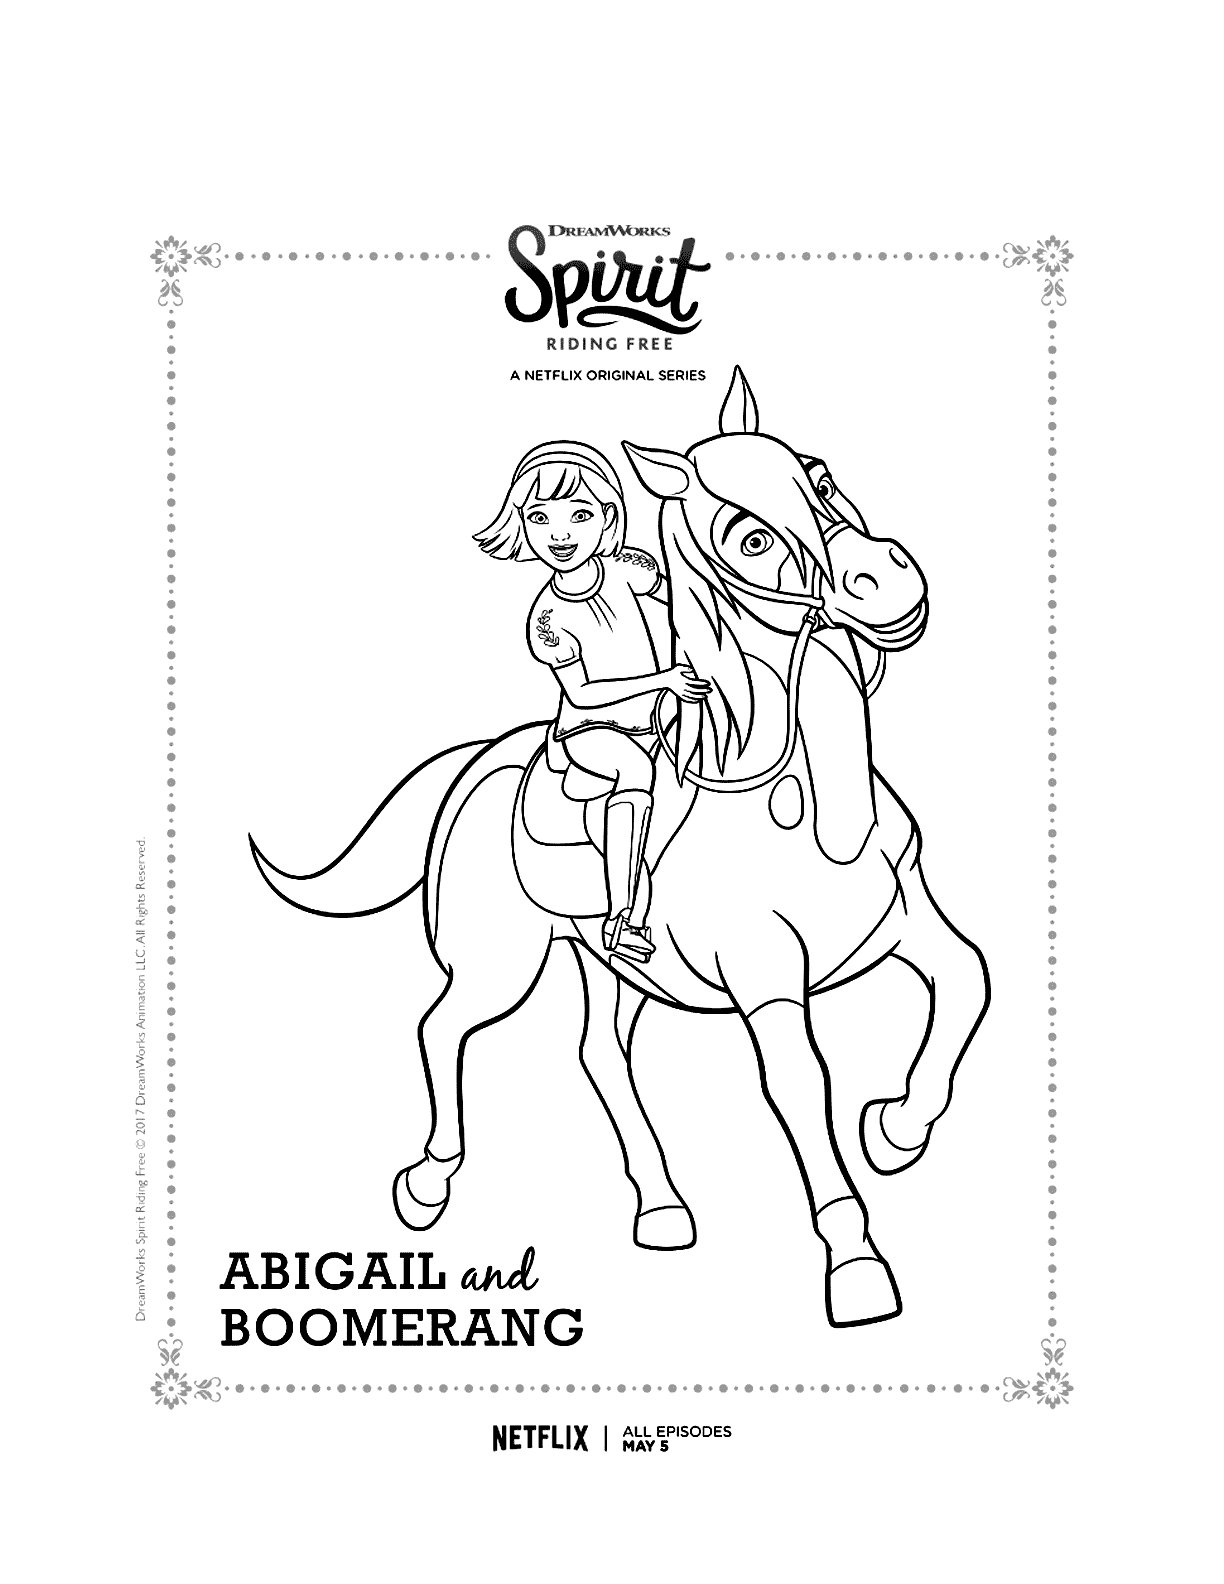 Spirit Riding Free Abigale And Boomerang Coloring Page